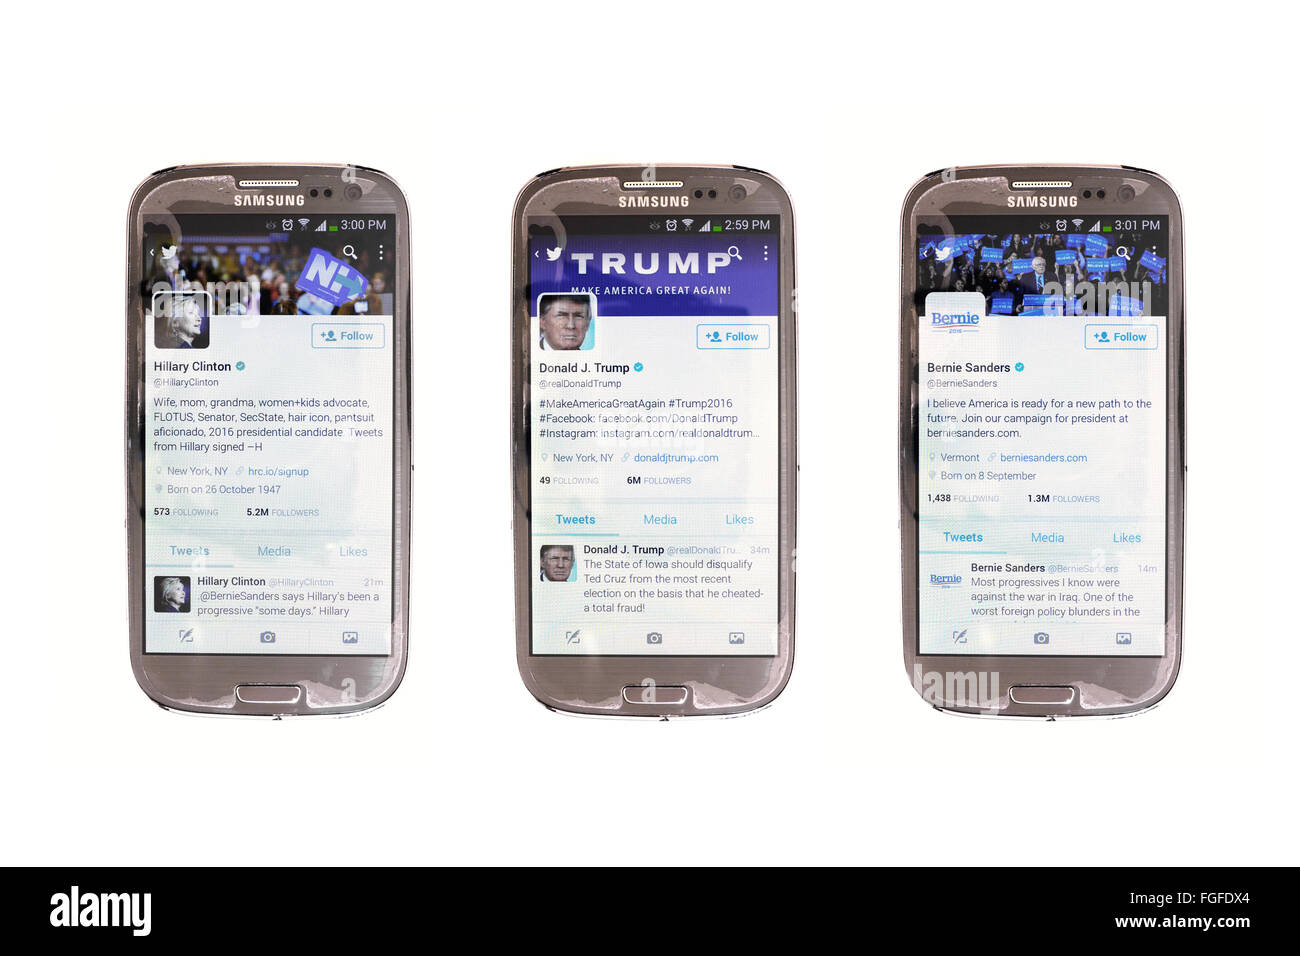 American political leaders twitter accounts on smartphone screens photographed against a white background. - Stock Image